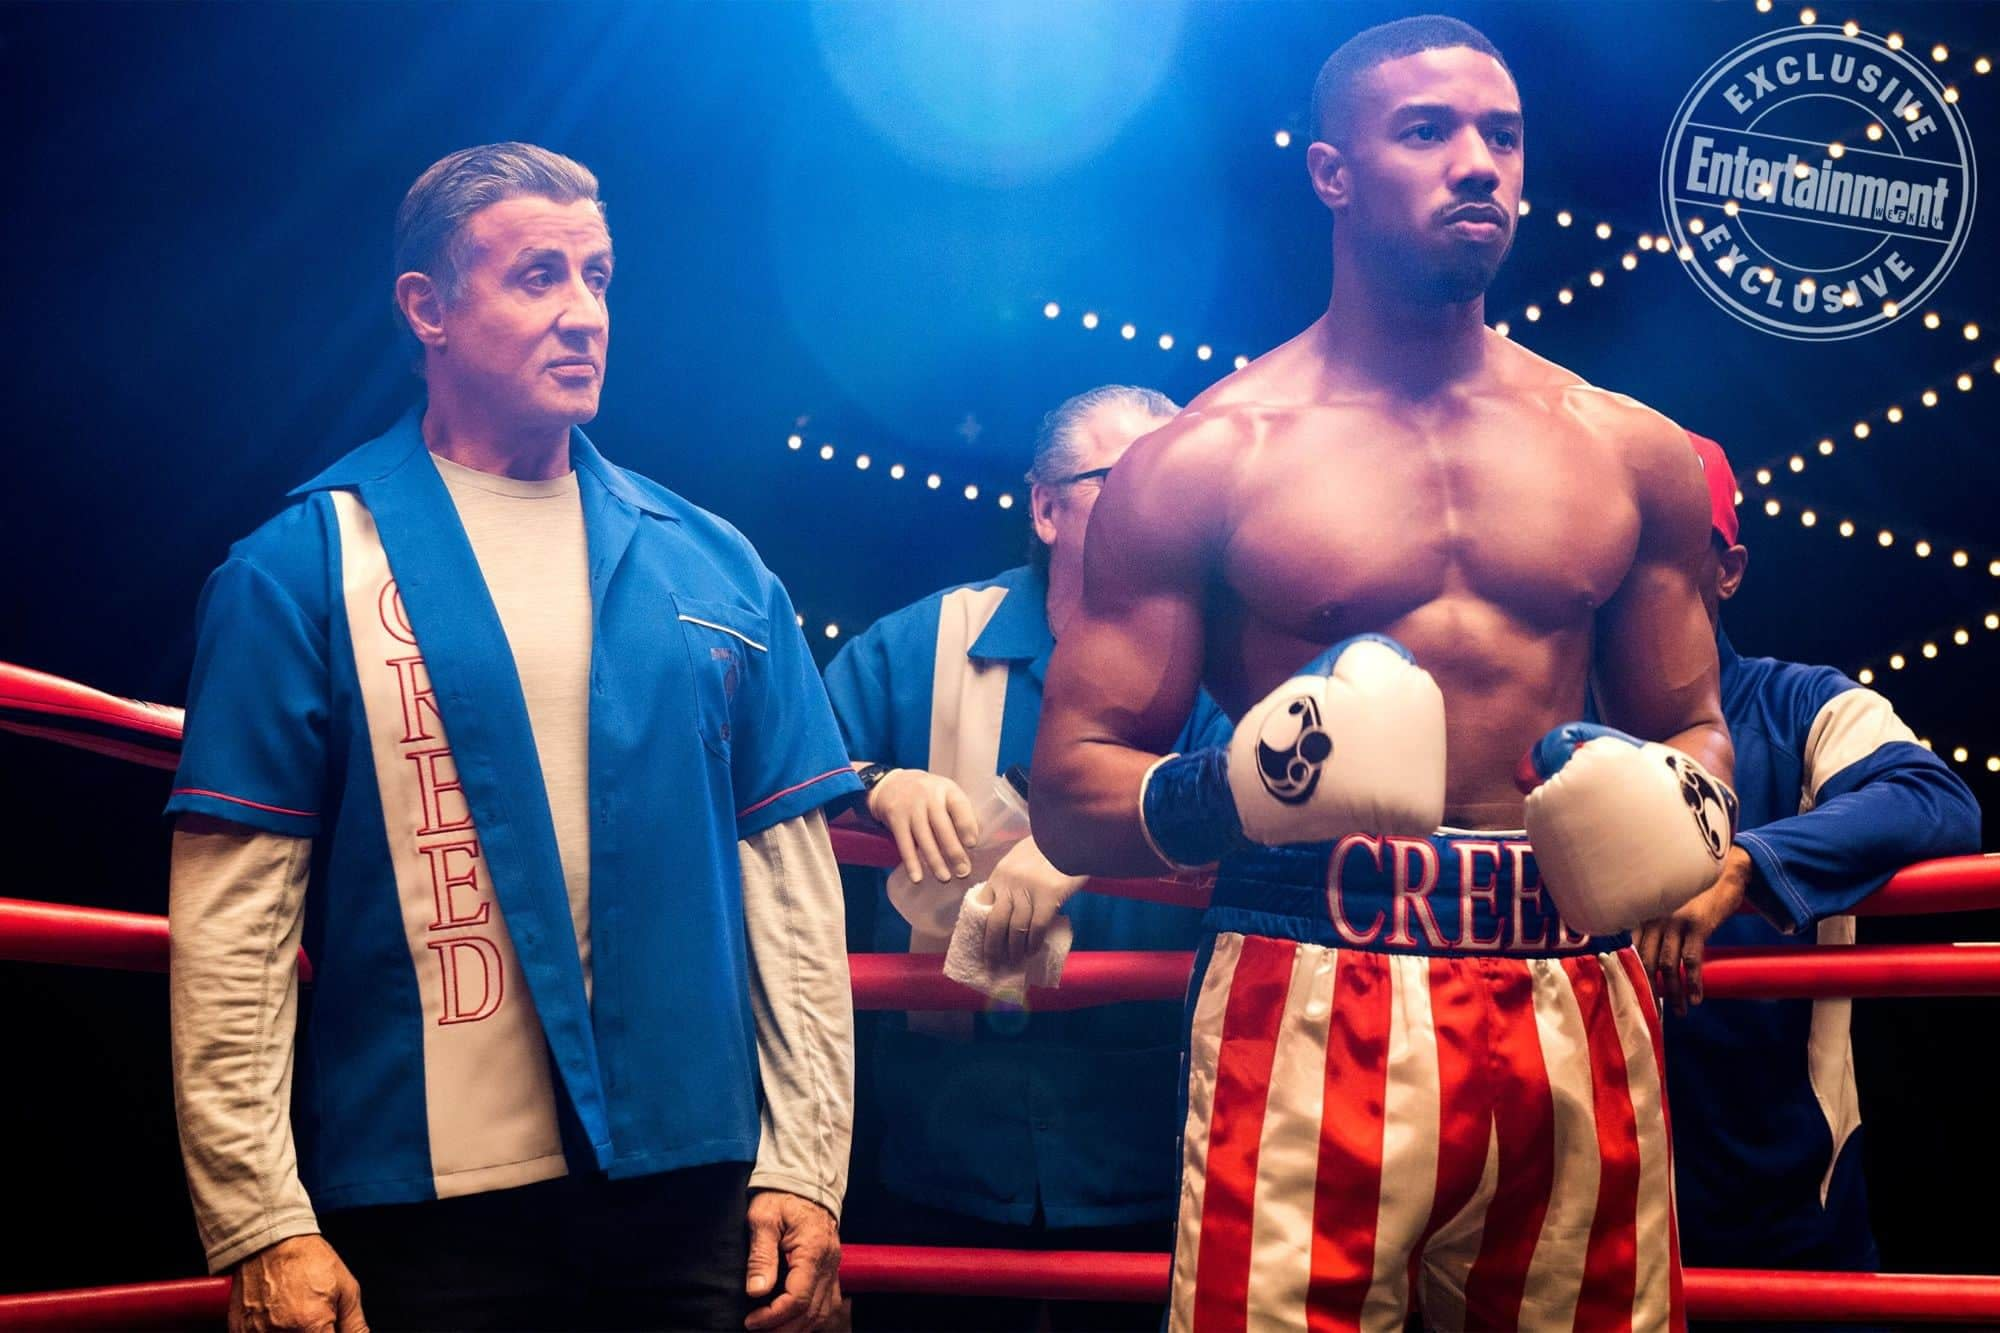 New Image from Creed II with Adonis Ready for a Fight